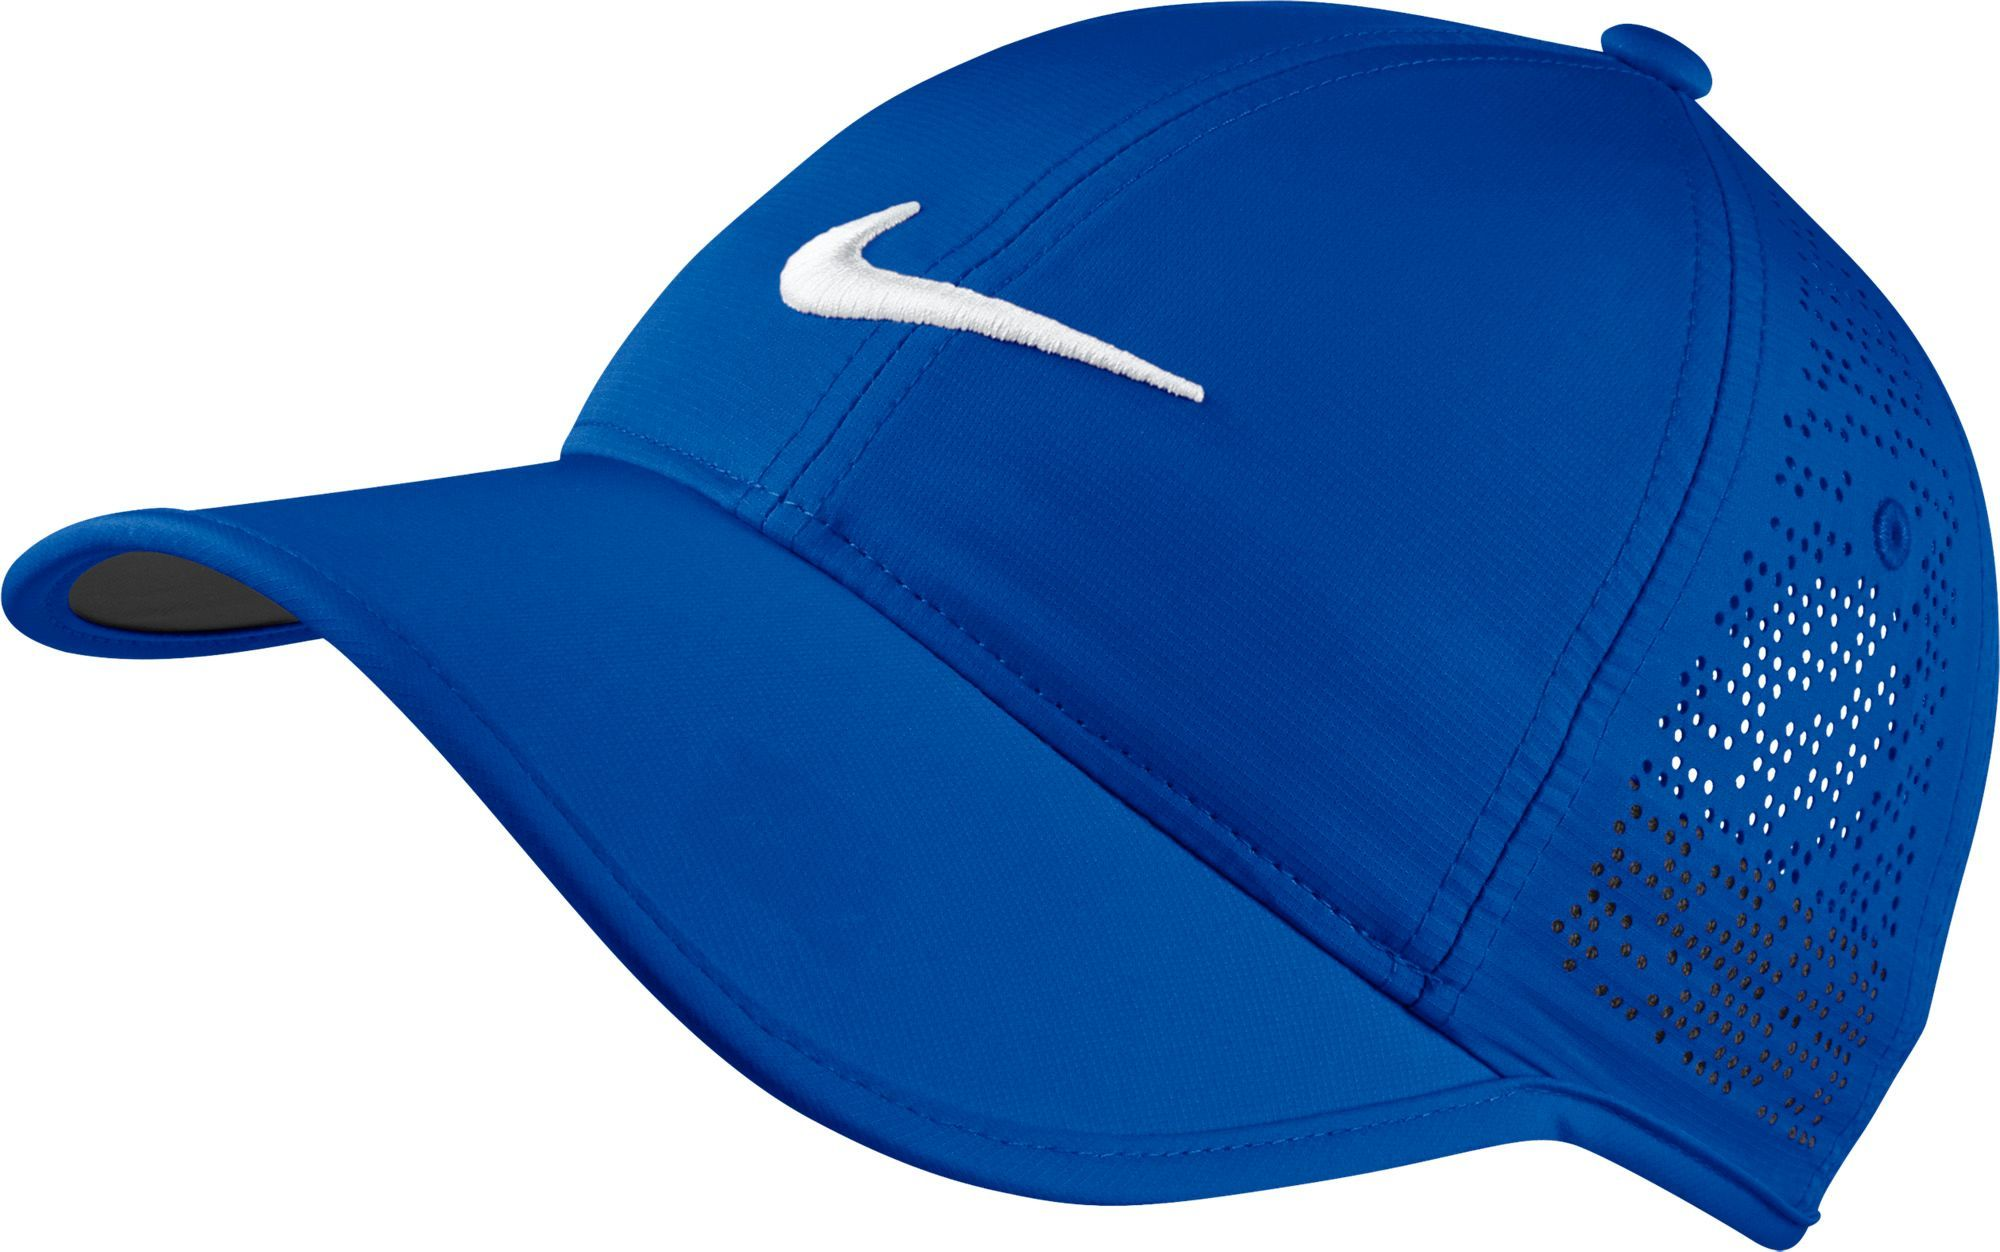 d3c2ba46 Nike Women's Perforated Golf Hat | Products | Nike women, Hats, Nike